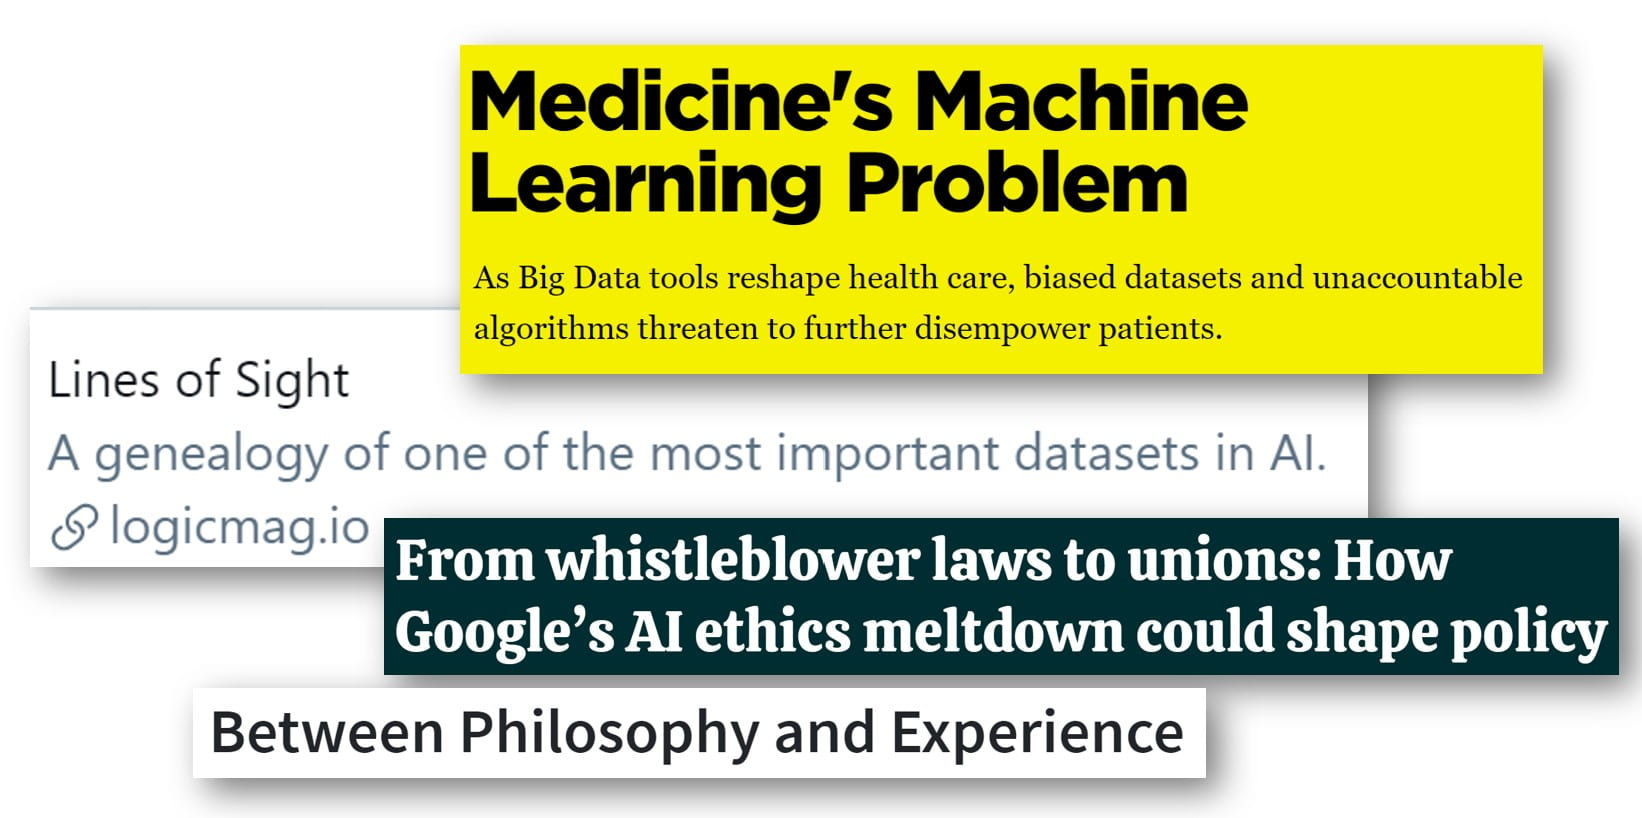 CADE Link Round-Up: Medicine's Machine Learning Problem, A Genealogy of ImageNet, How Google's Meltdown Could Shape Policy